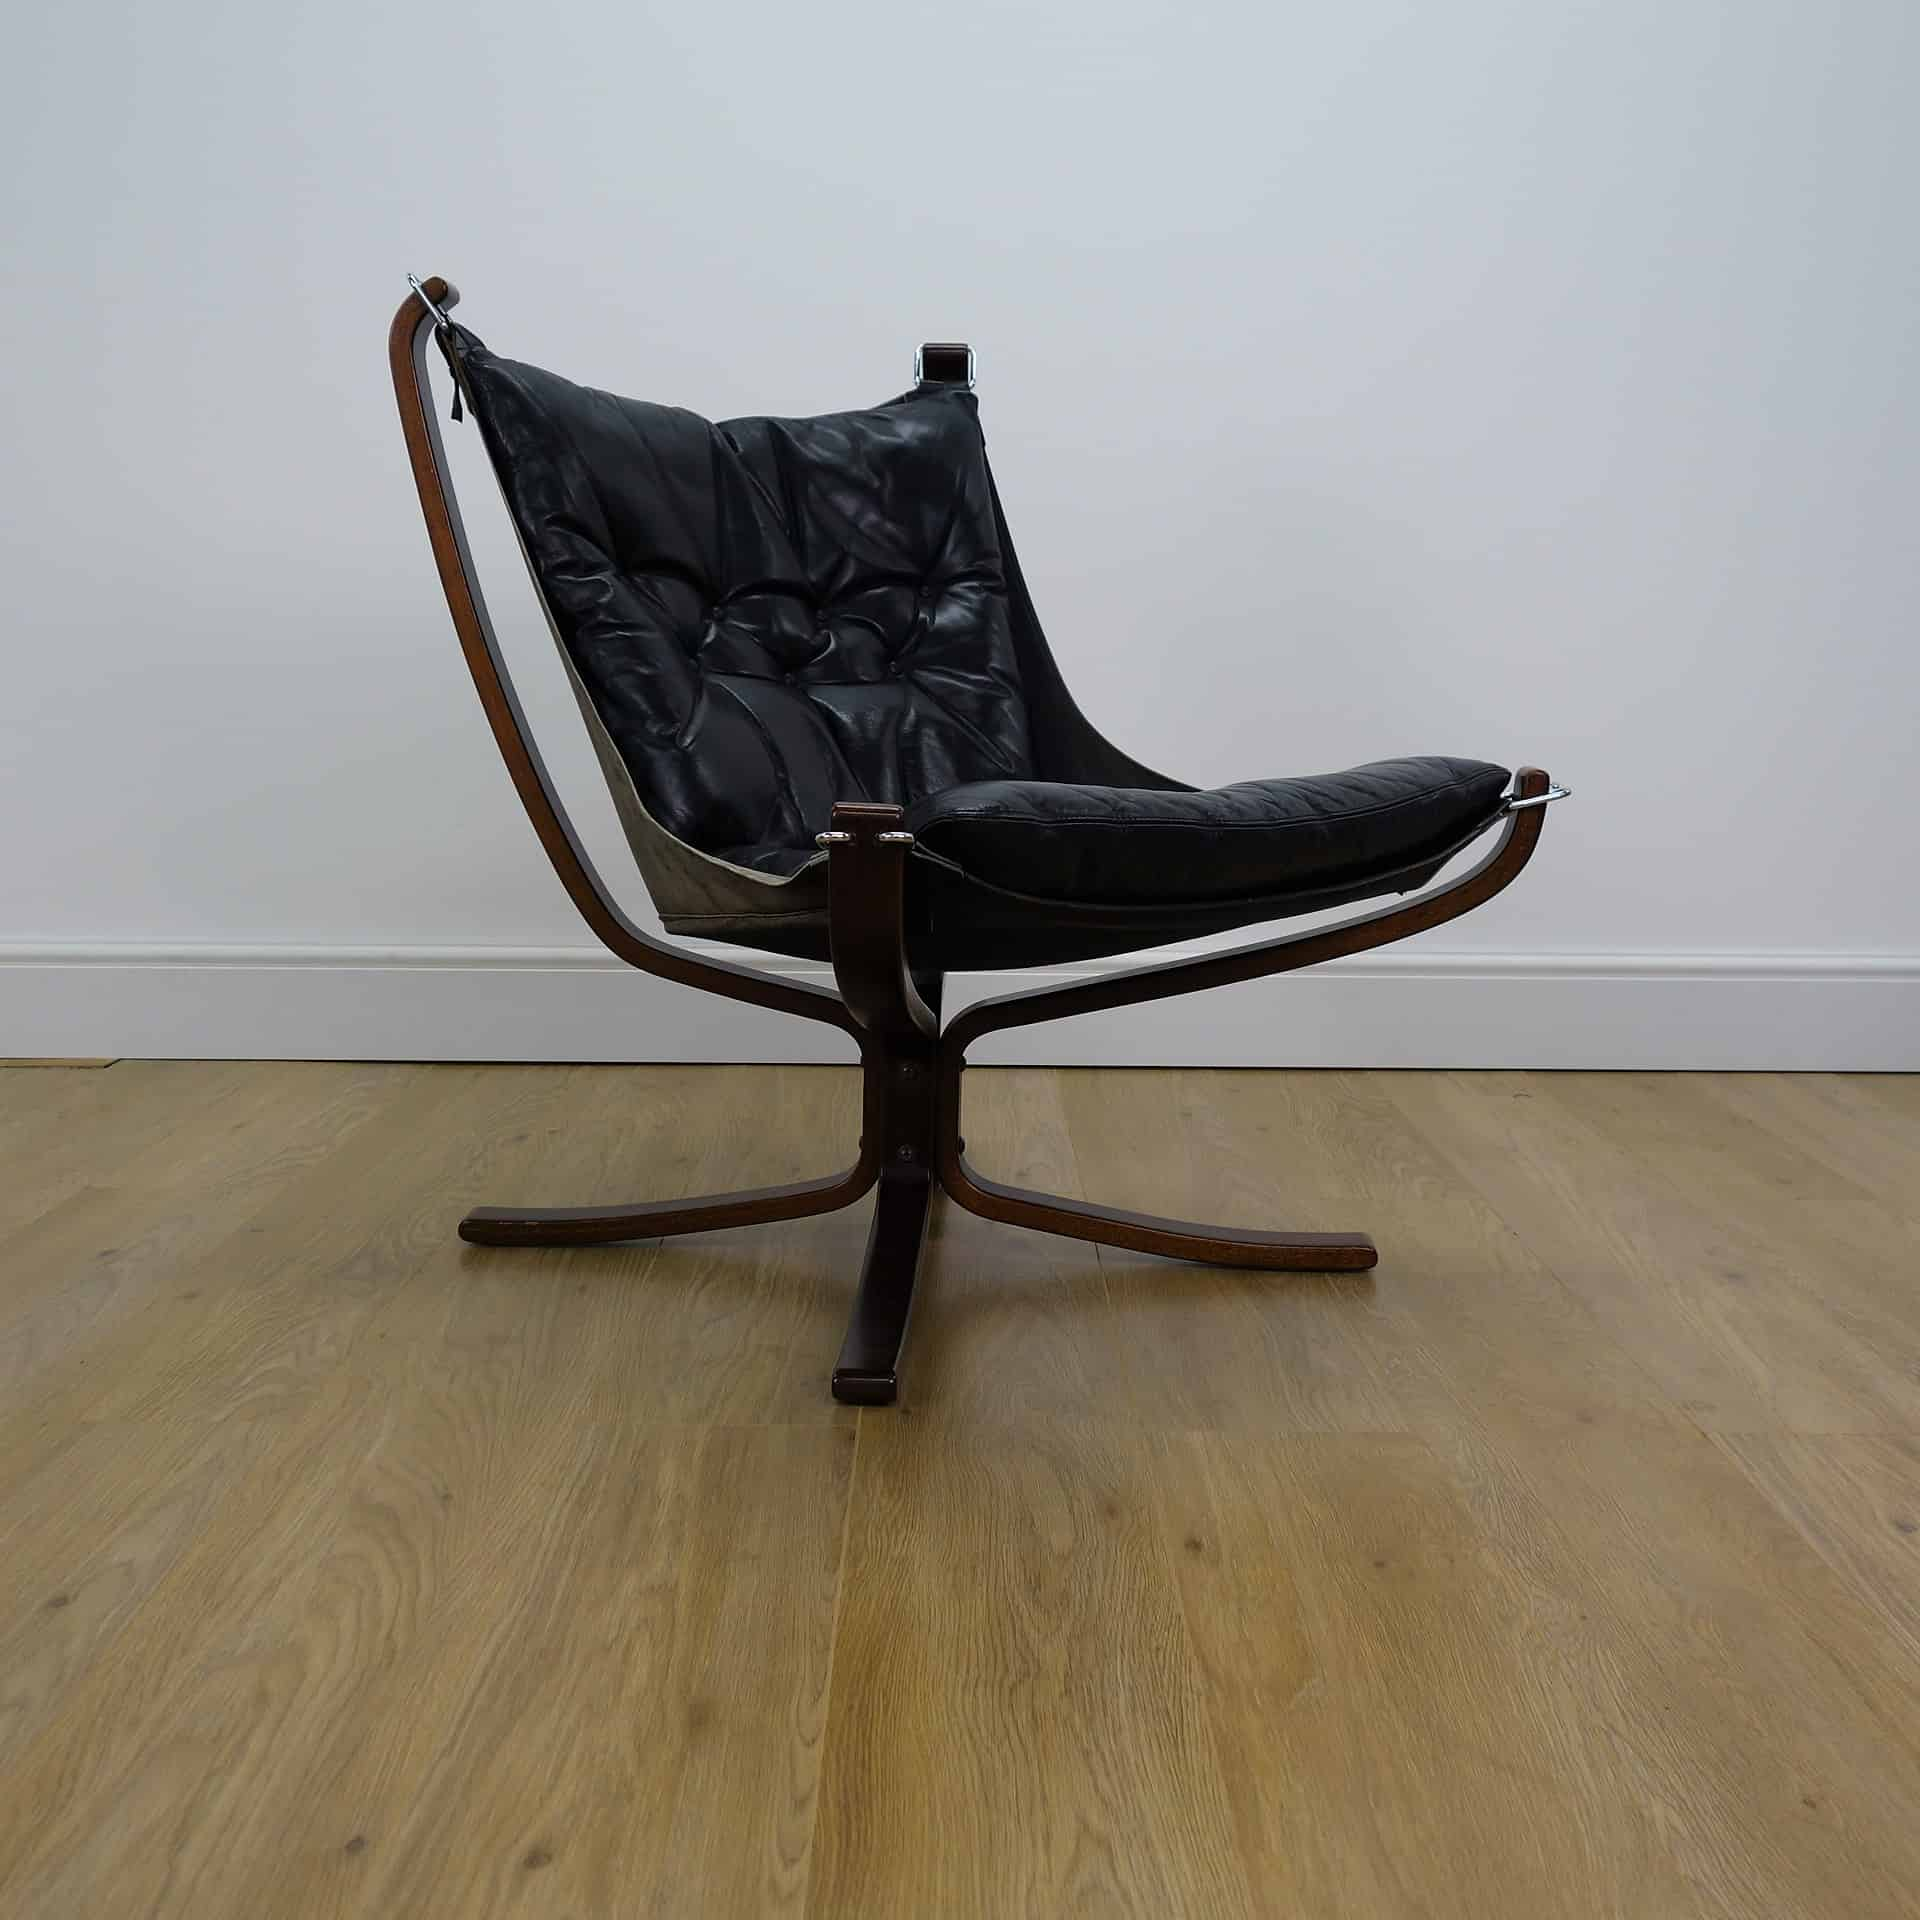 Black leather low Falcon chair by Sigur Ressell